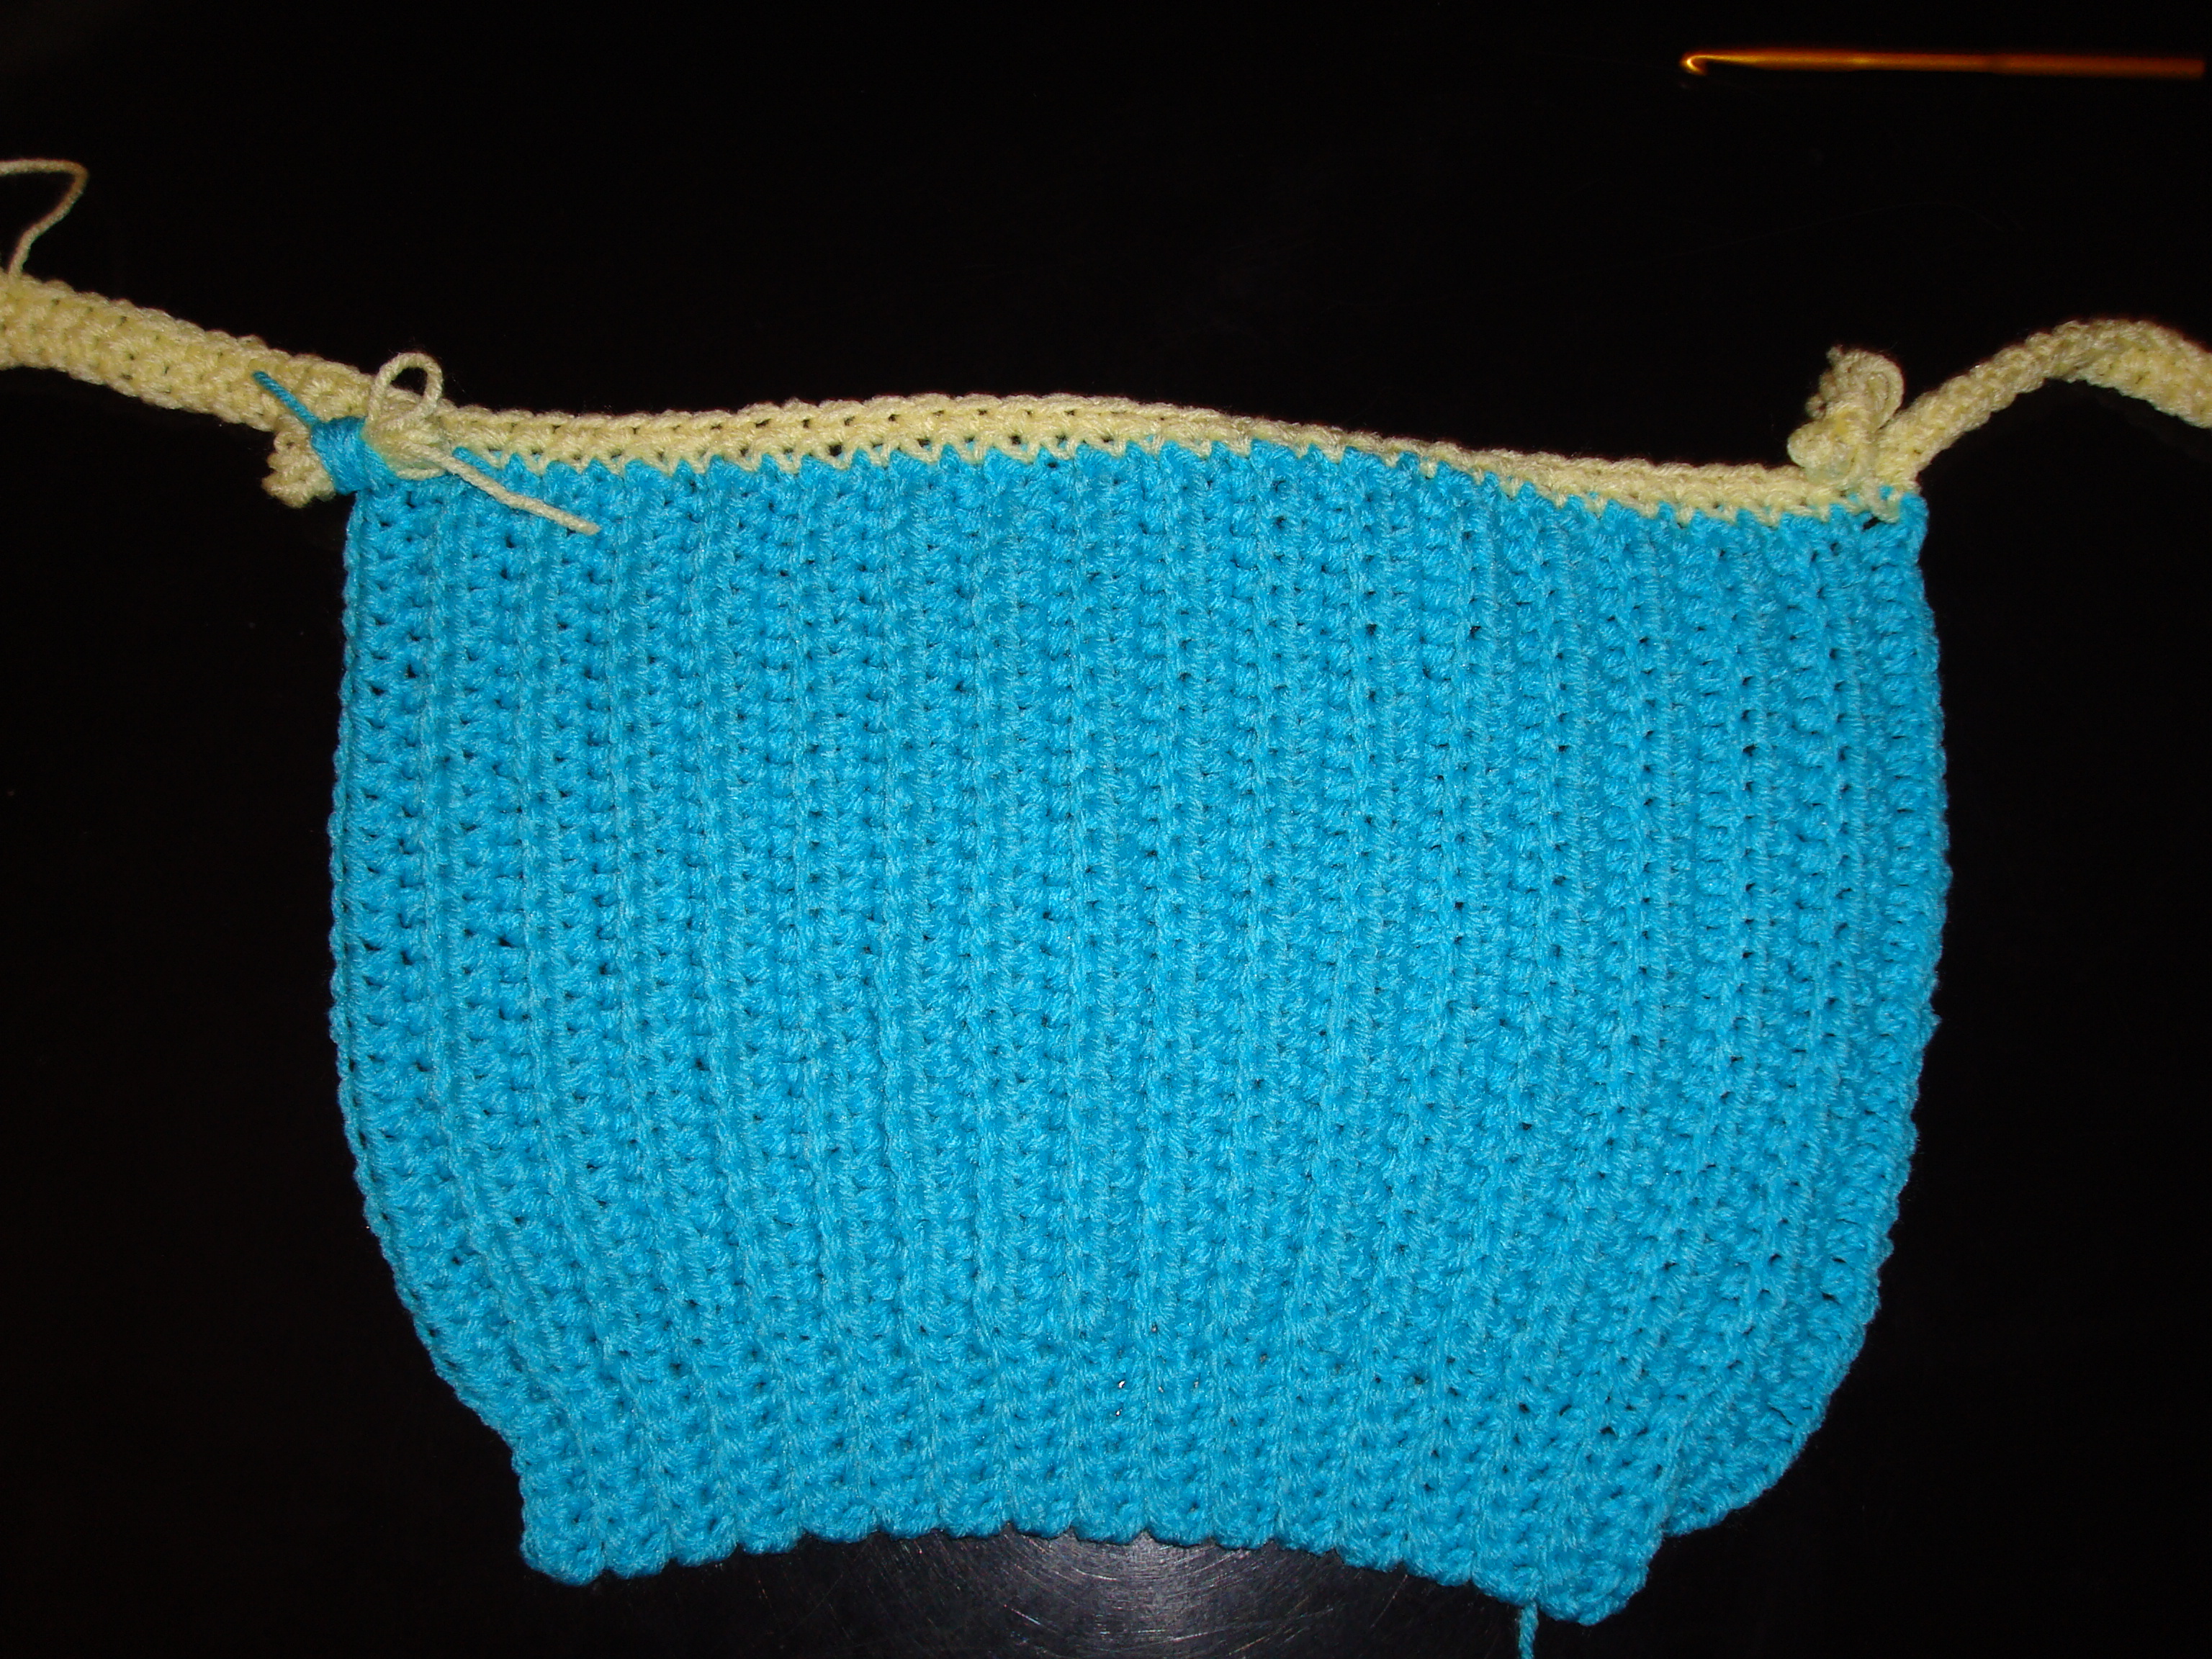 The bottom half of my version of the Knit for Kids sweater is crocheted vertically.